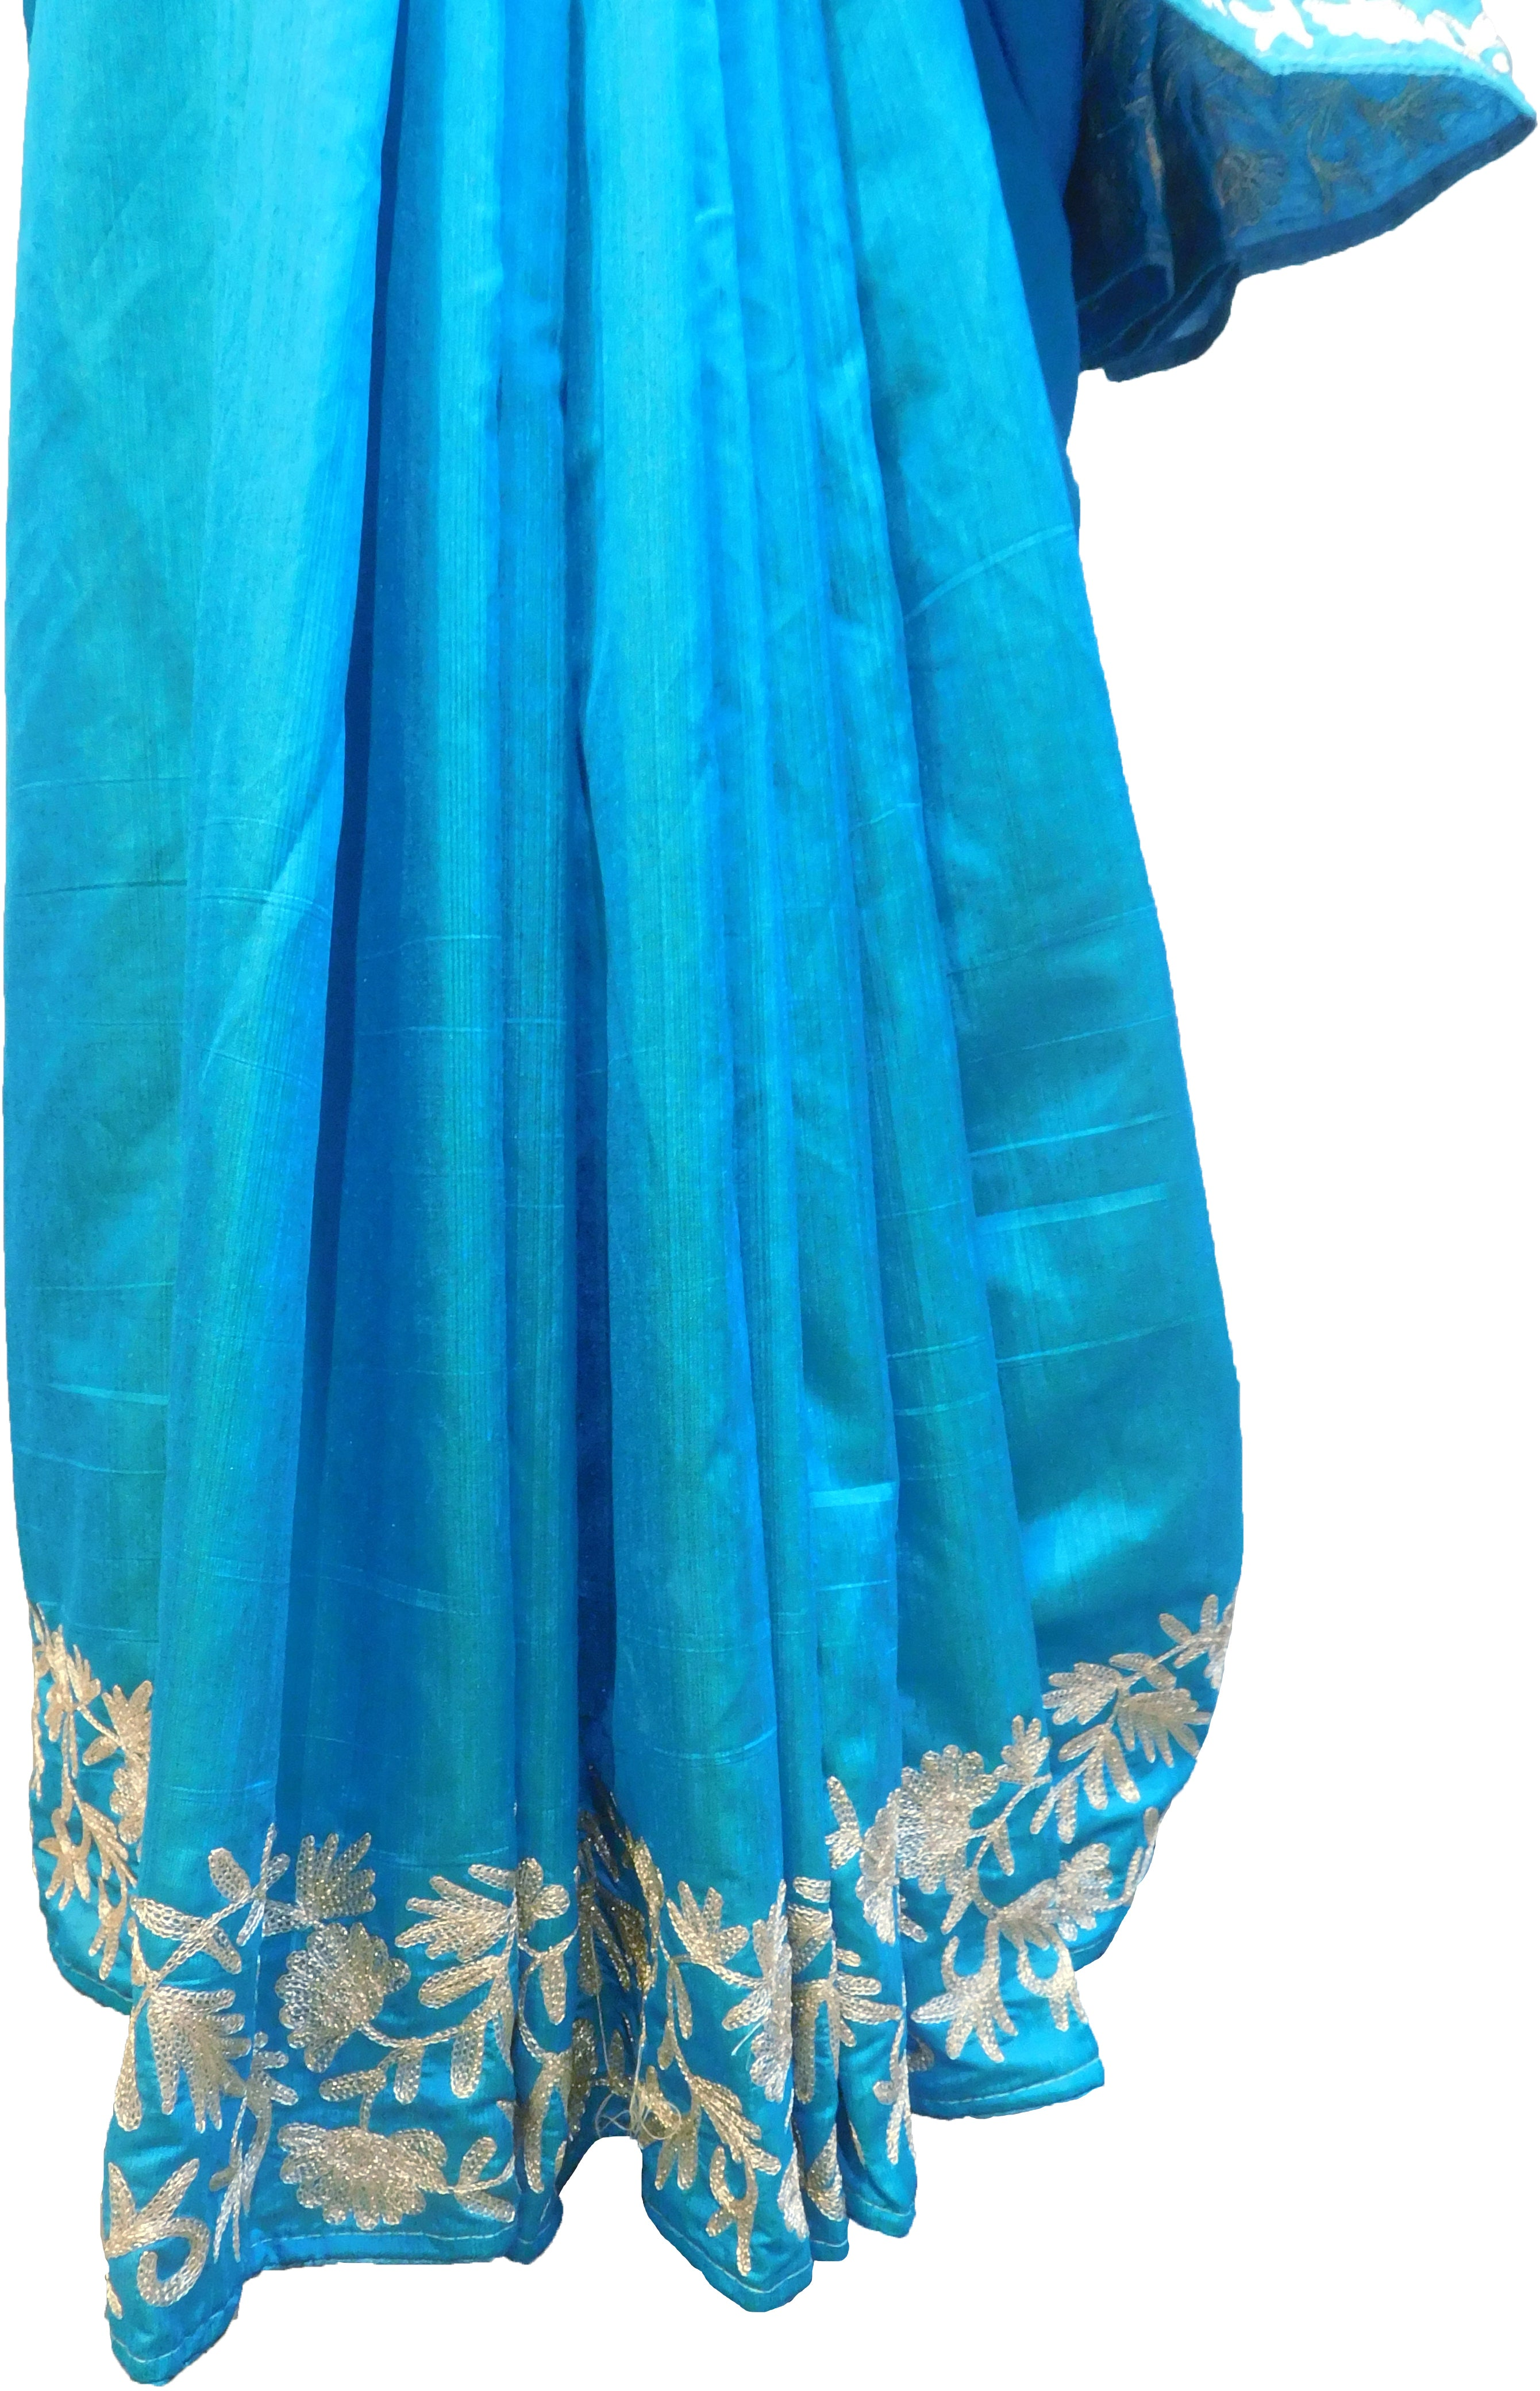 SMSAREE Blue Designer Wedding Partywear Silk (Vichitra) Zari Hand Embroidery Work Bridal Saree Sari With Blouse Piece F276